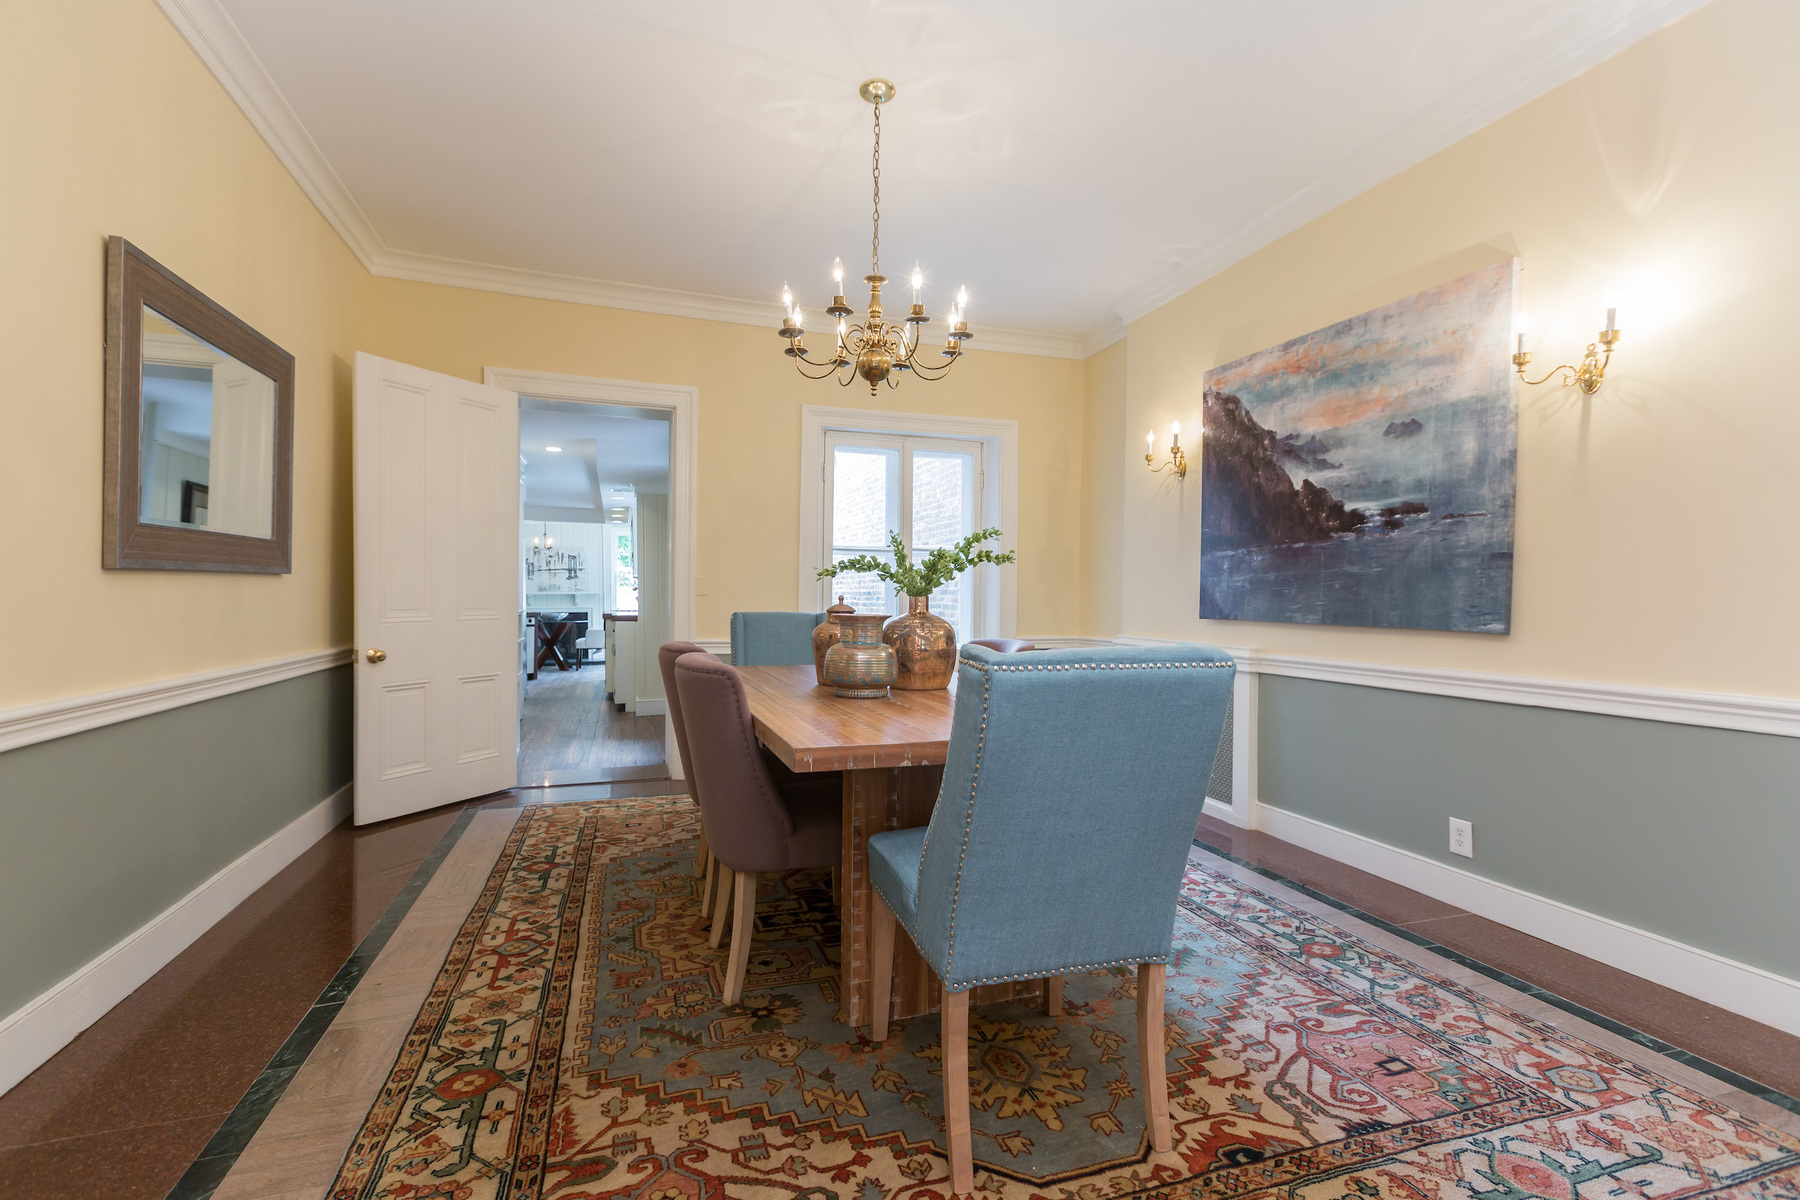 Additional photo for property listing at Old Town 117 Prince St Alexandria, Βιρτζινια 22314 Ηνωμενεσ Πολιτειεσ